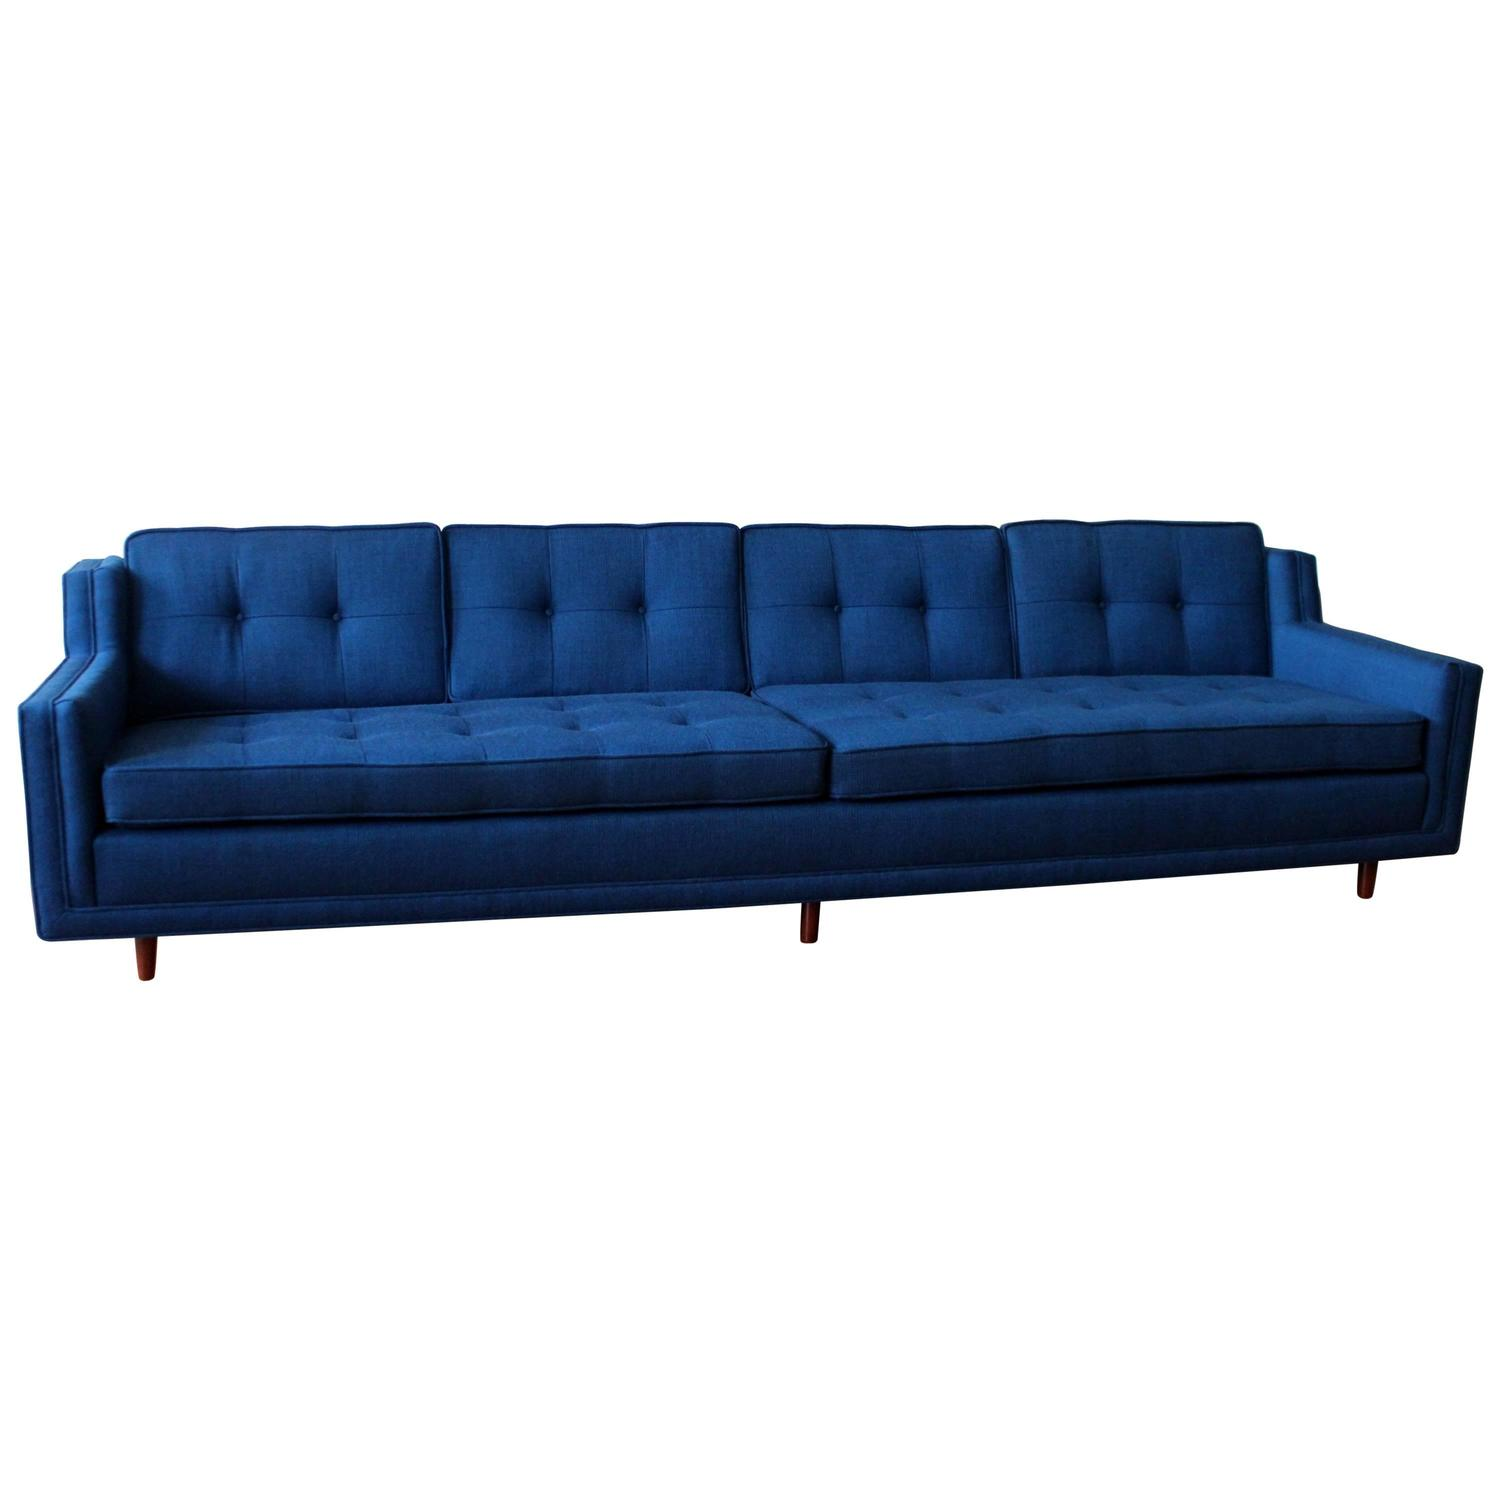 Blue mid century modern low slung nemschoff sofa an for Modern furniture